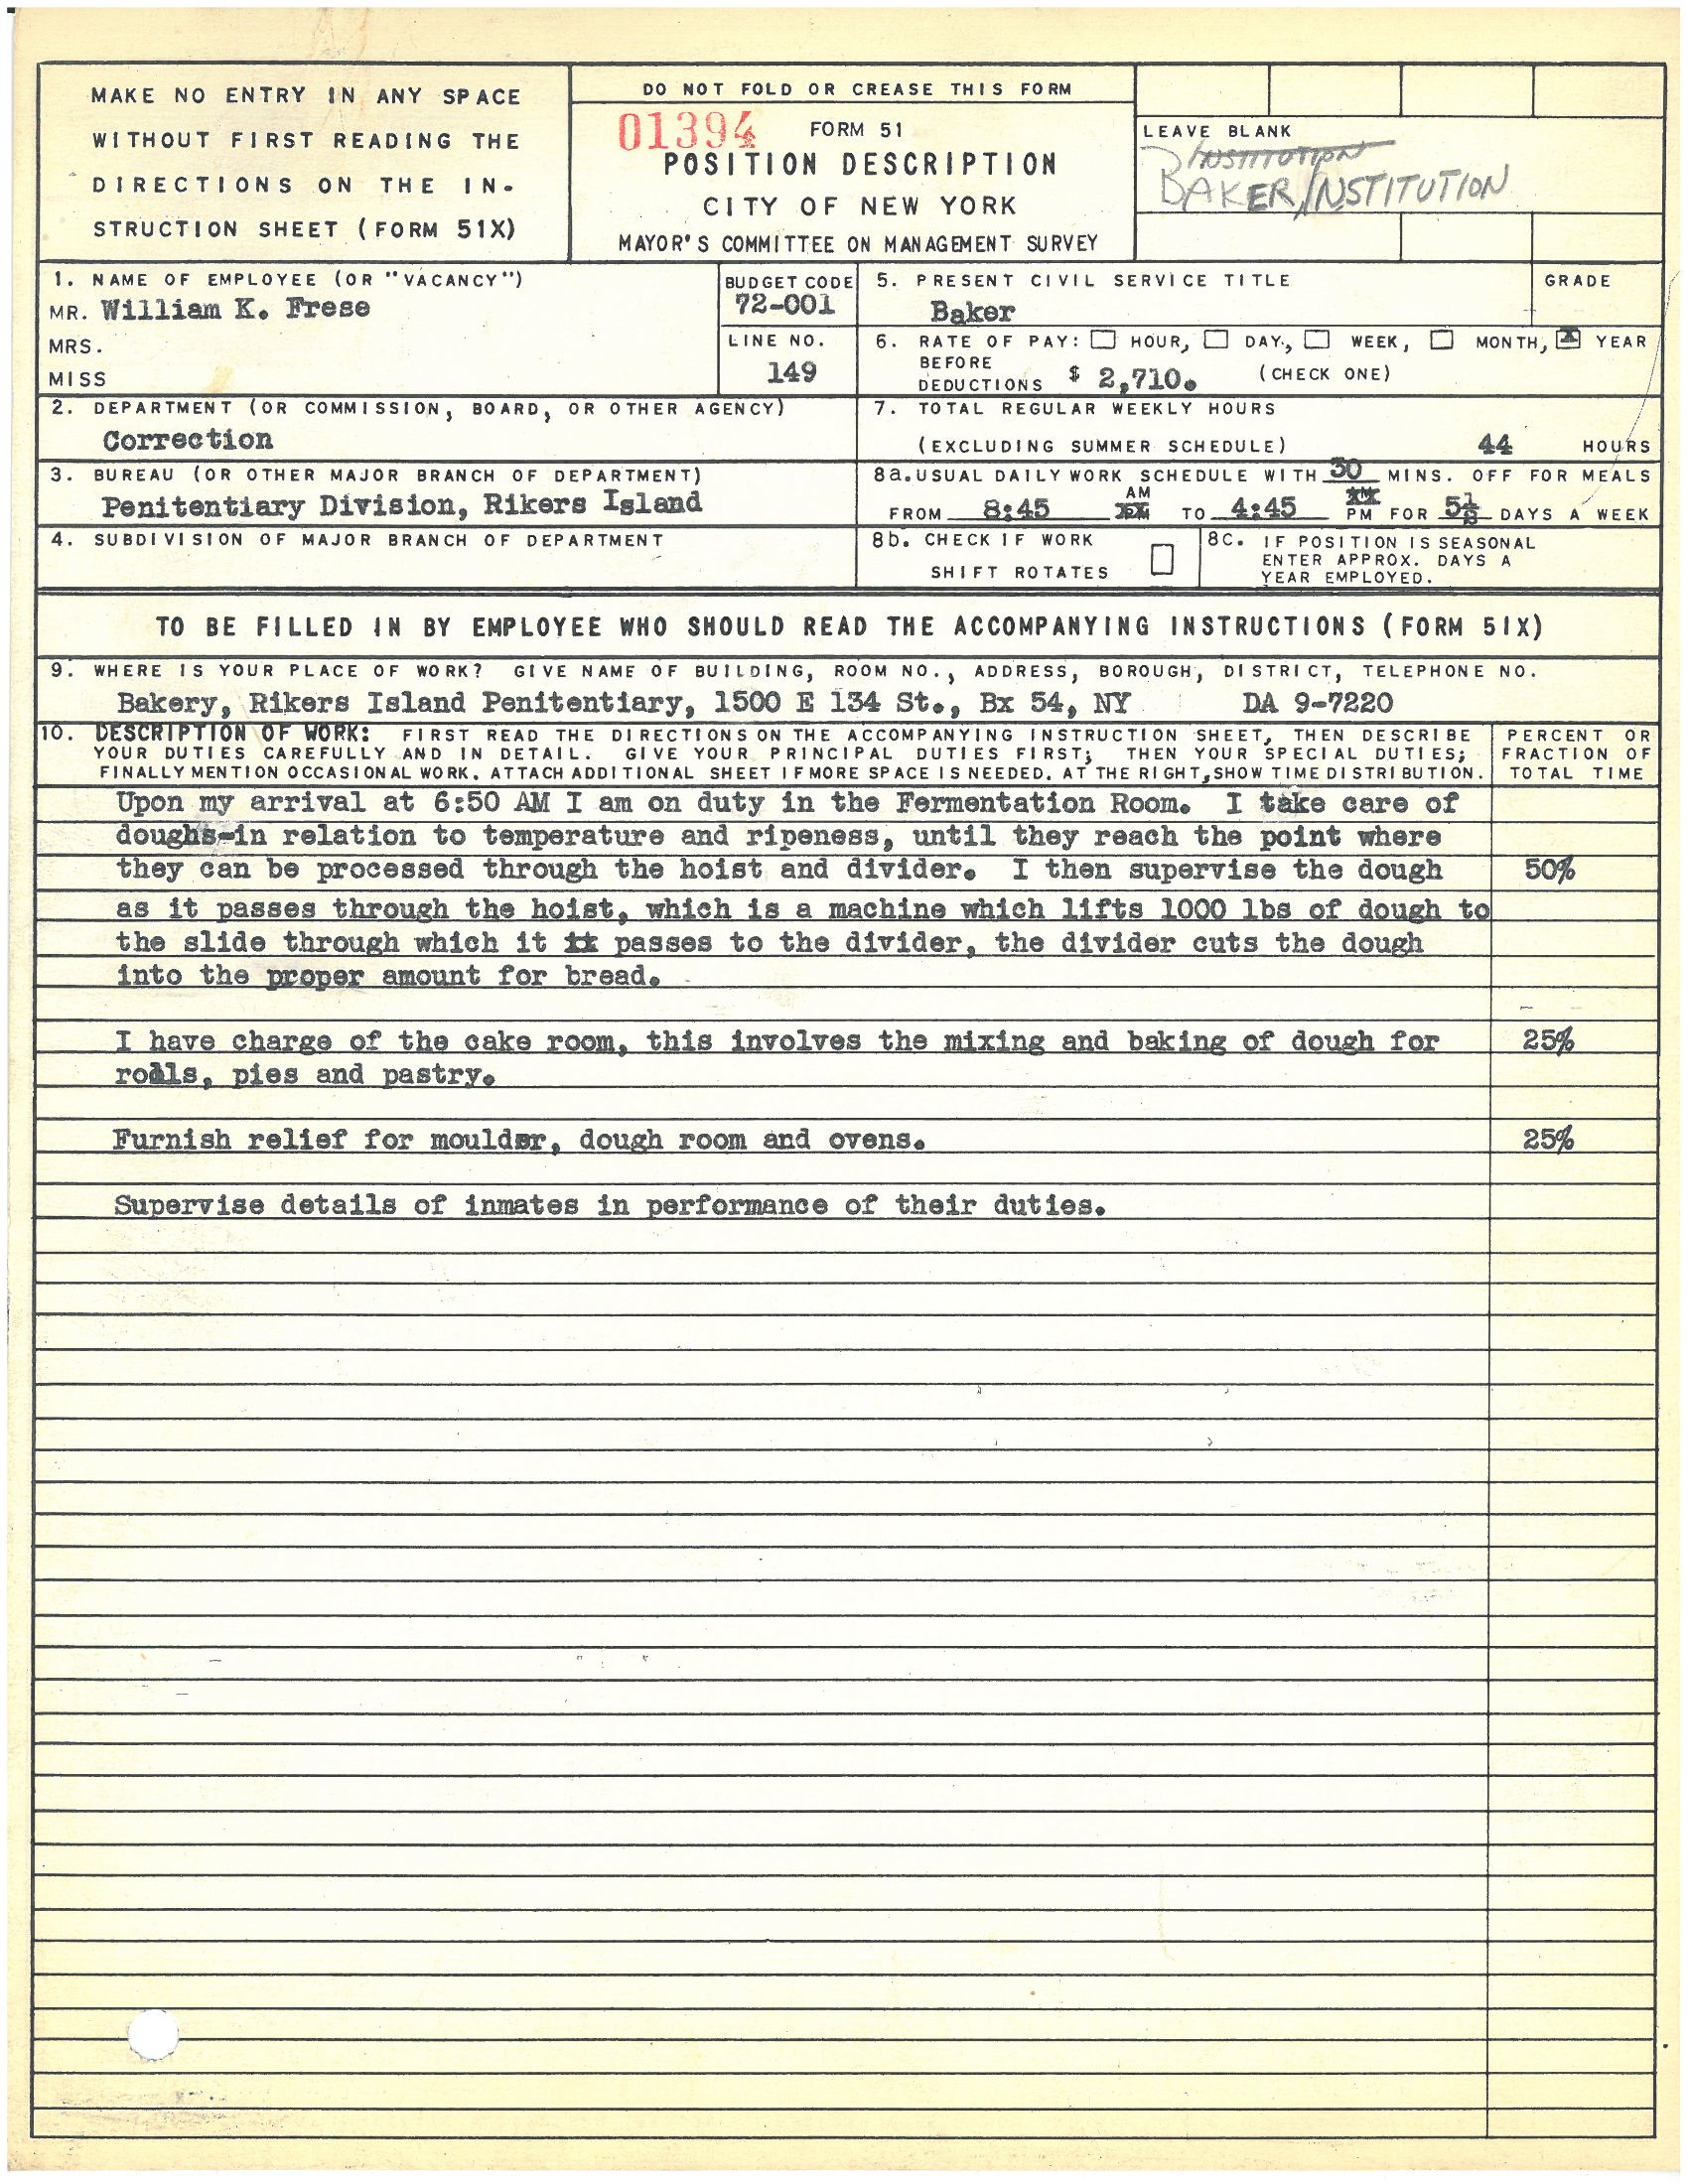 Form 51: William K. Frese, Baker, Rikers Island. Mayor's Committee on Management Survey, circa 1950. NYC Municipal Archives.